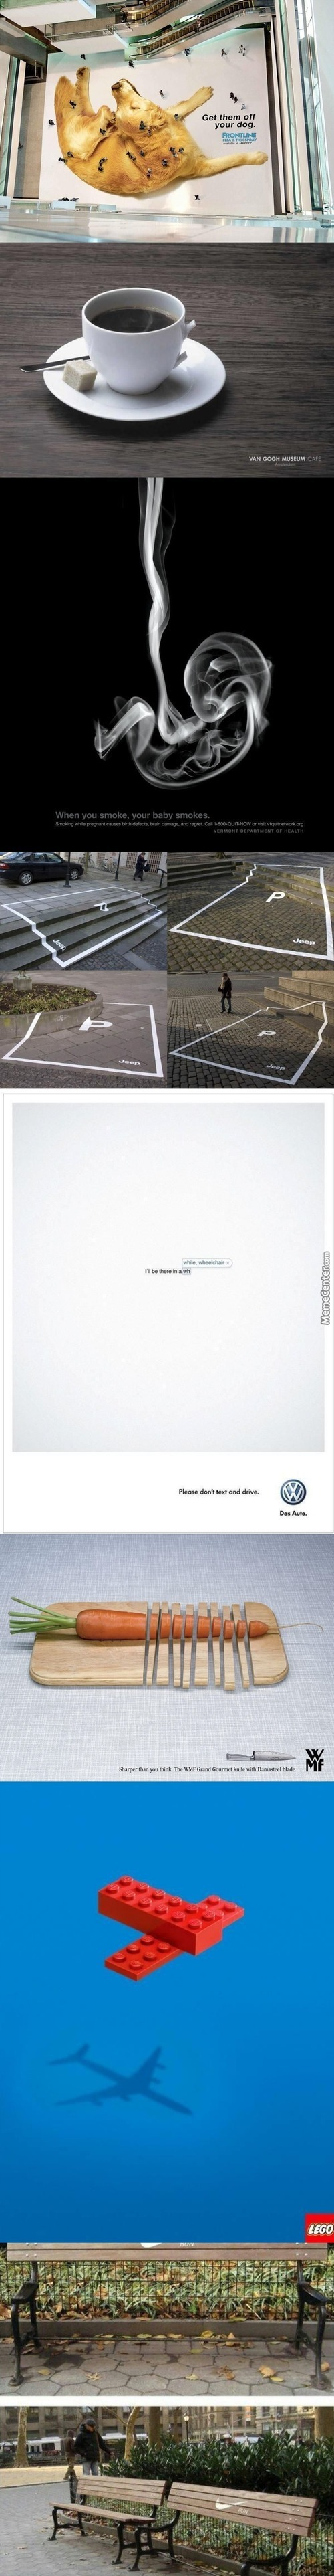 Brilliant Ads #1